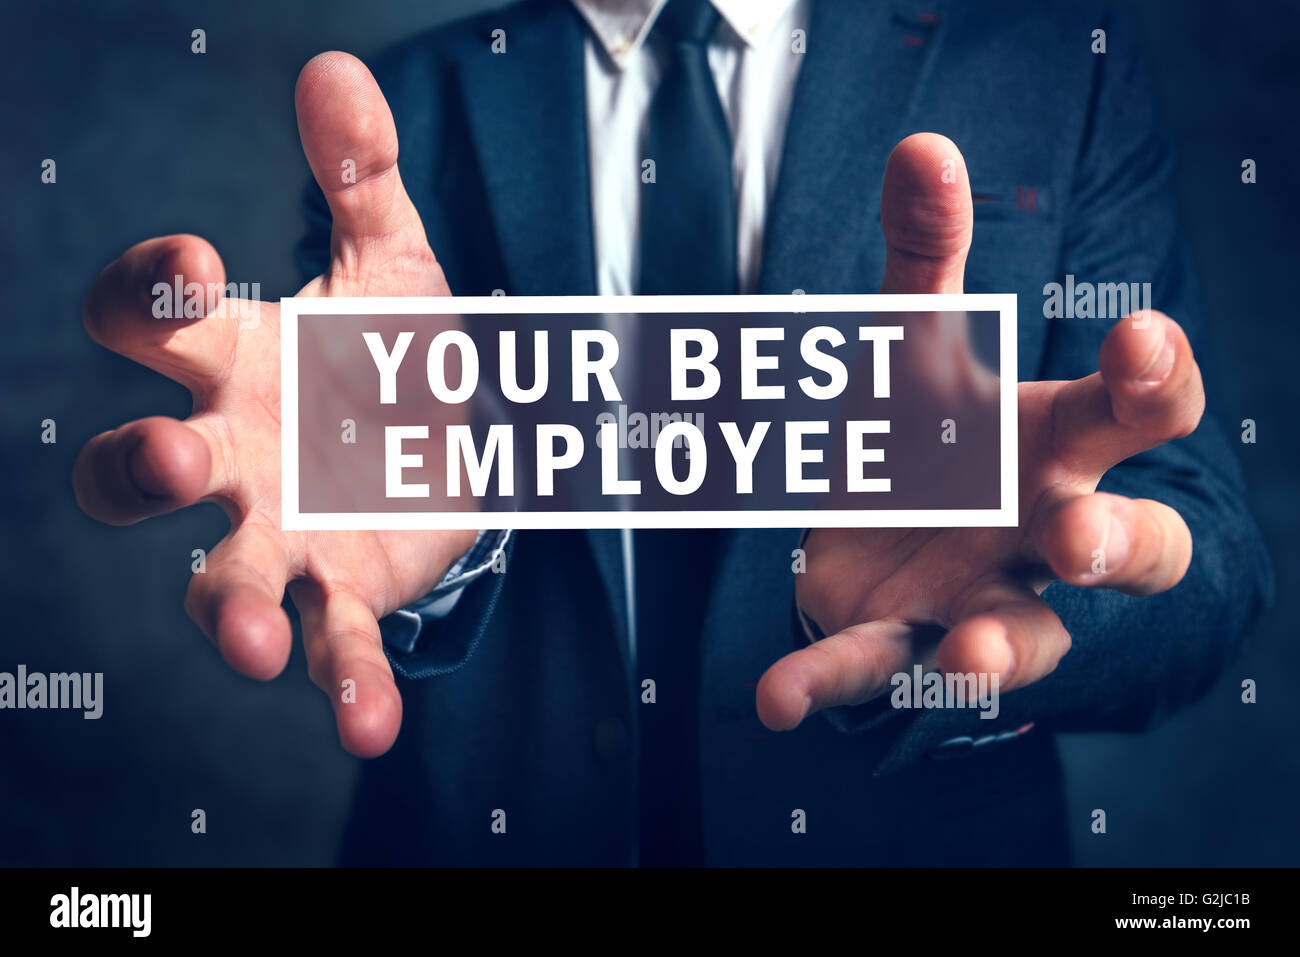 Keep Your Best Employee Concept With Business Manager In Background